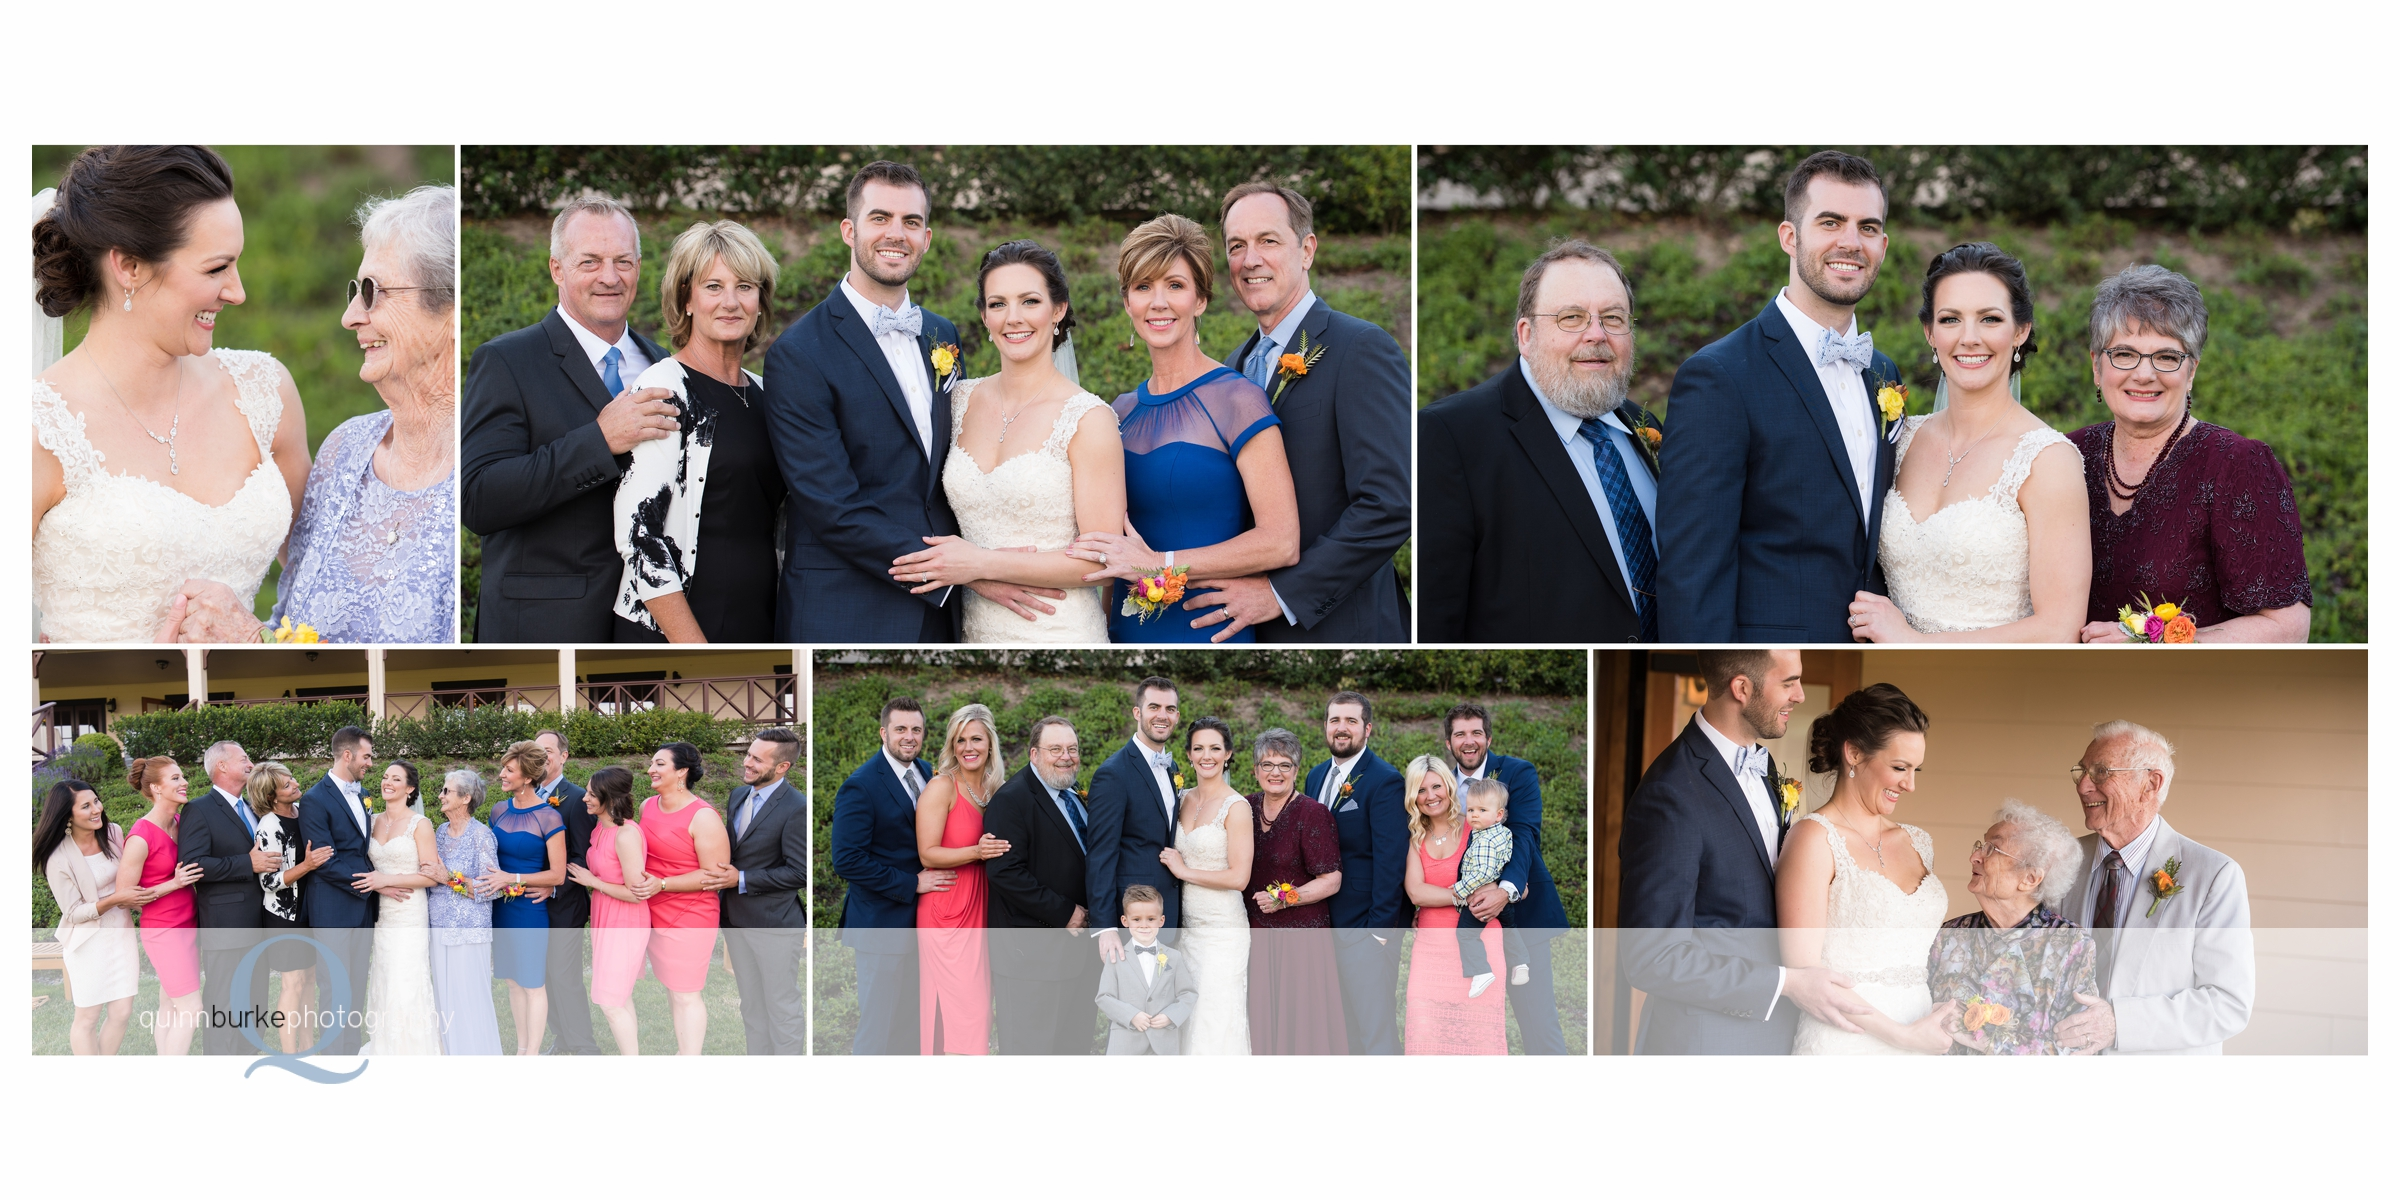 family wedding portraits at zenith